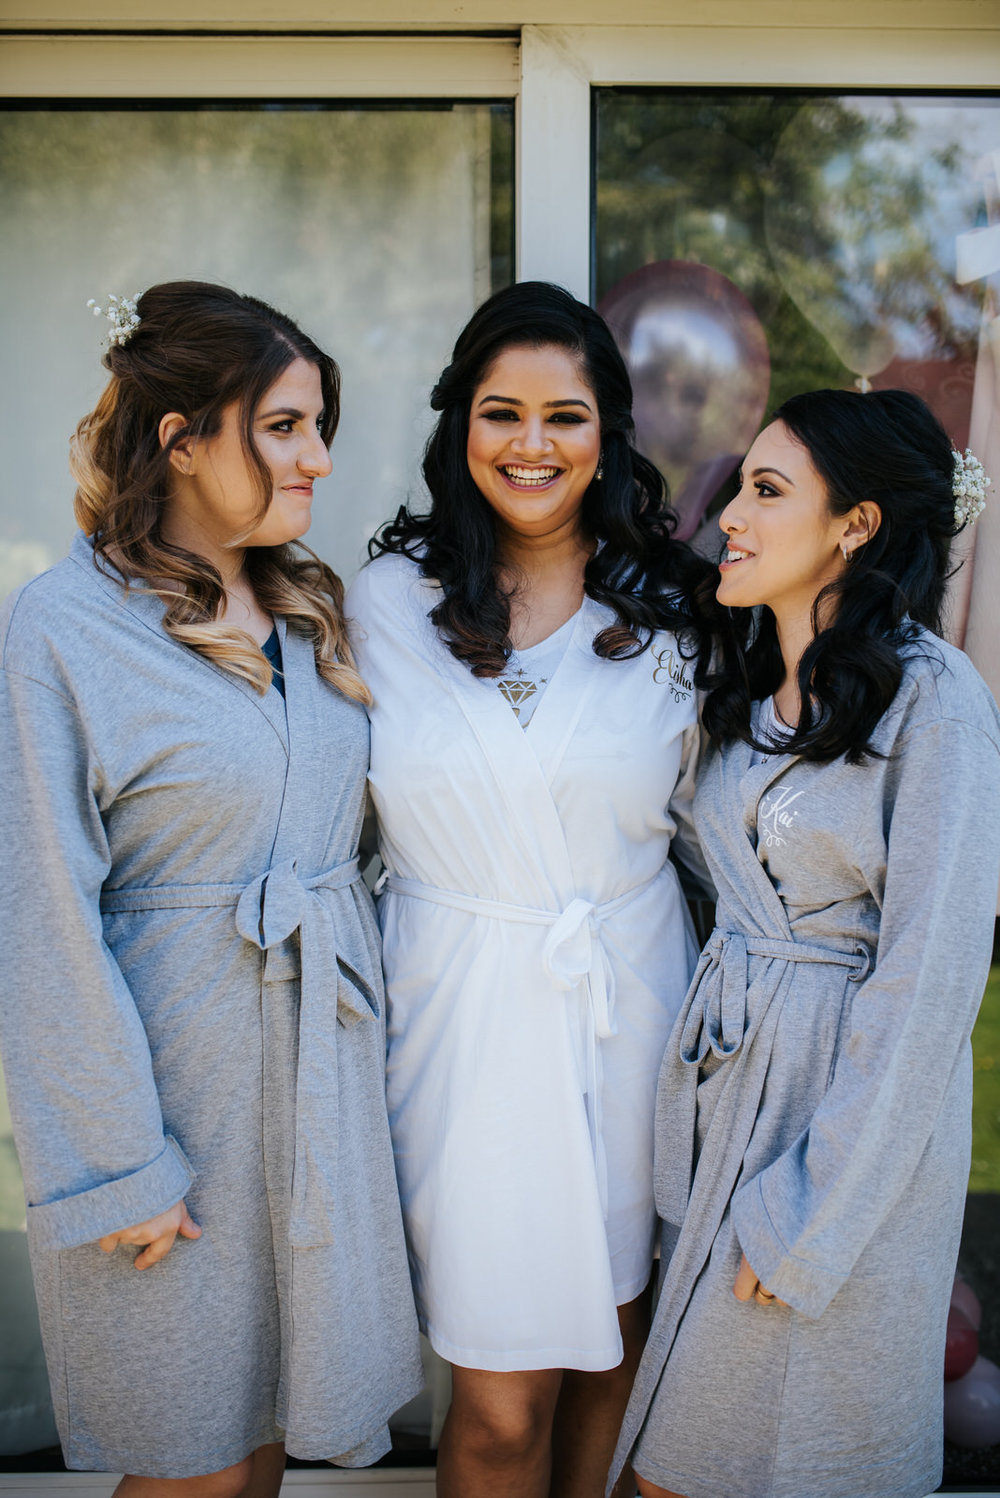 Bride and bridesmaids smile at each other as they are getting re